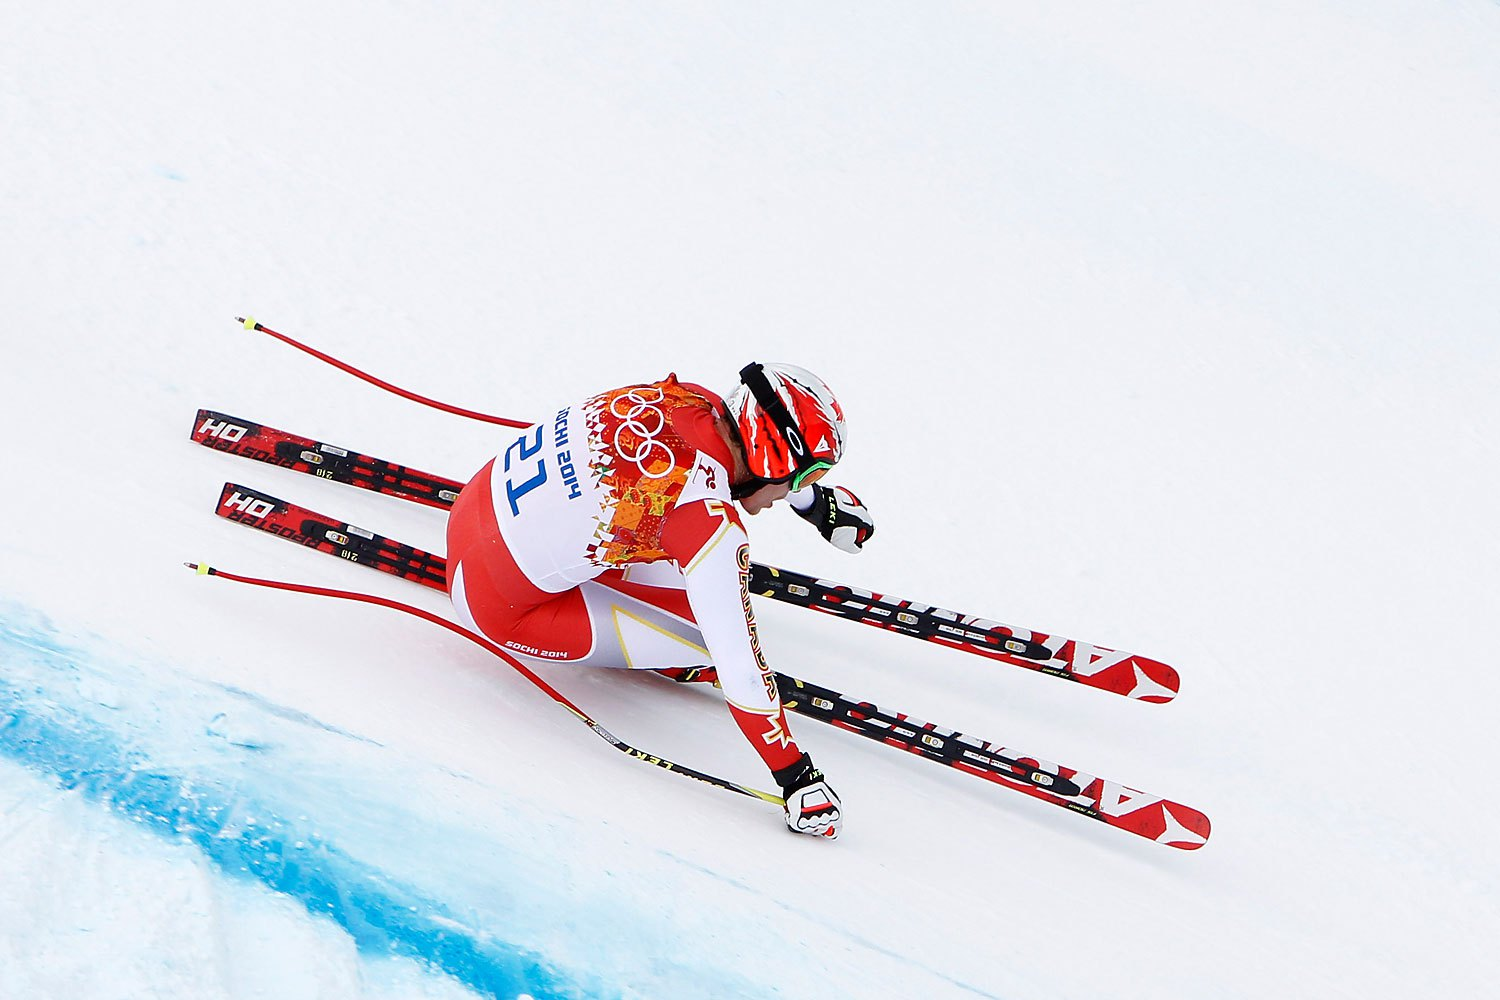 SOCHI, RUSSIA - FEBRUARY 09: (FRANCE OUT) Erik Guay of Canada competes during the Alpine Skiing Men's Downhill at the Sochi 2014 Winter Olympic Games at Rosa Khutor Alpine Centre on February 09, 2014 in Sochi, Russia. (Photo by Alexis Boichard/Agence Zoom/Getty Images)